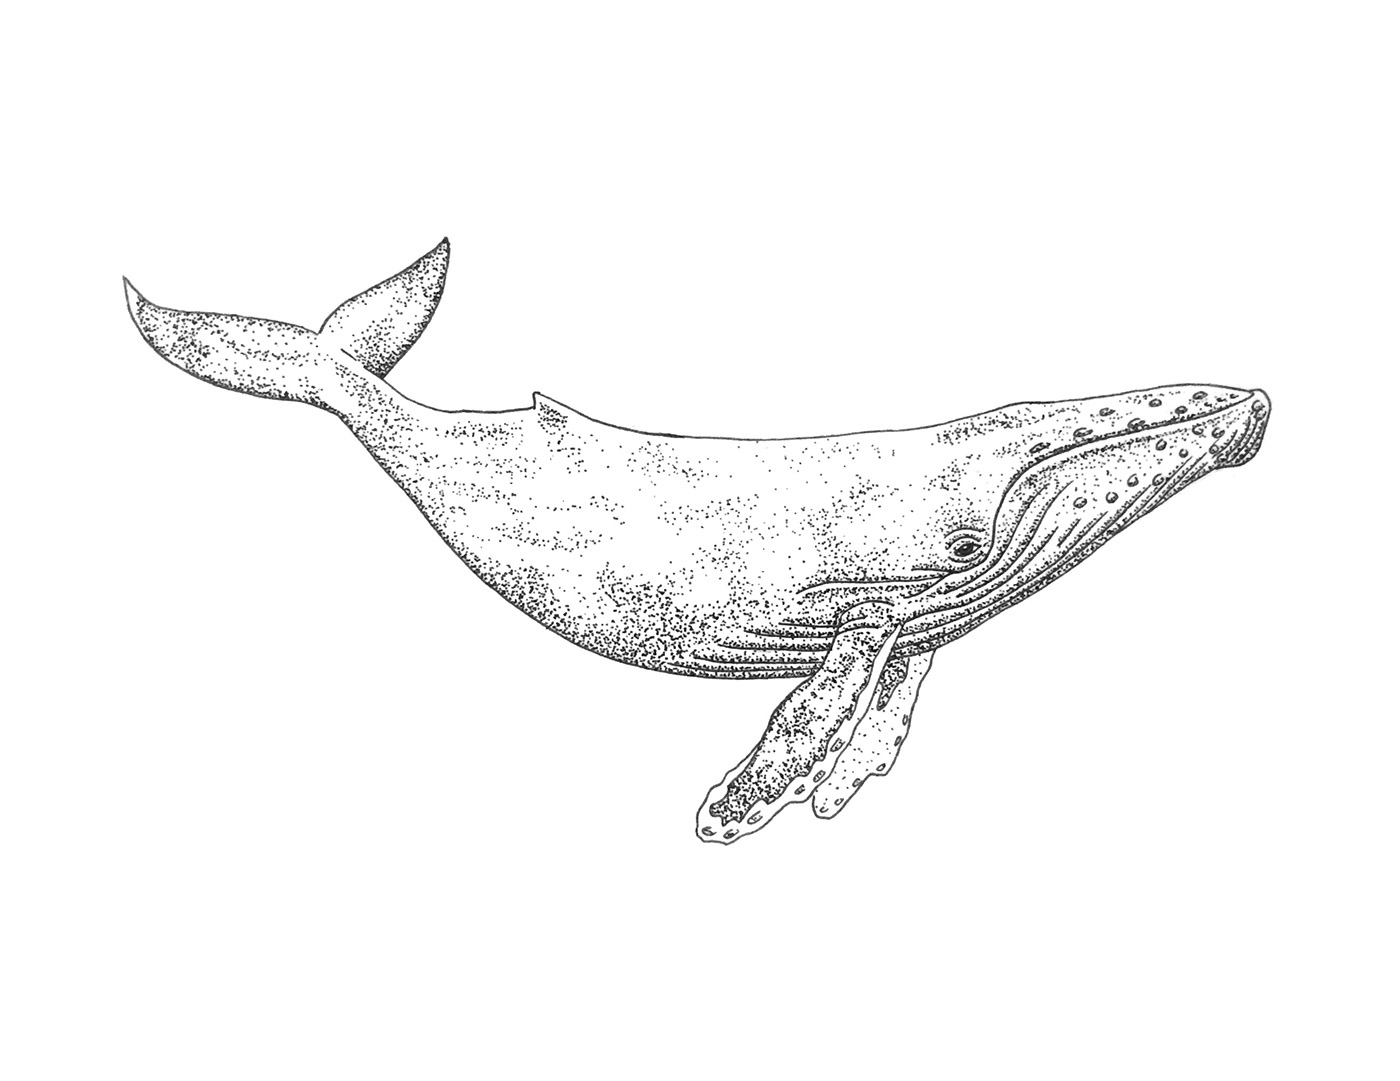 Humpback Whale Line Drawing : Humpback whale tattoo on behance